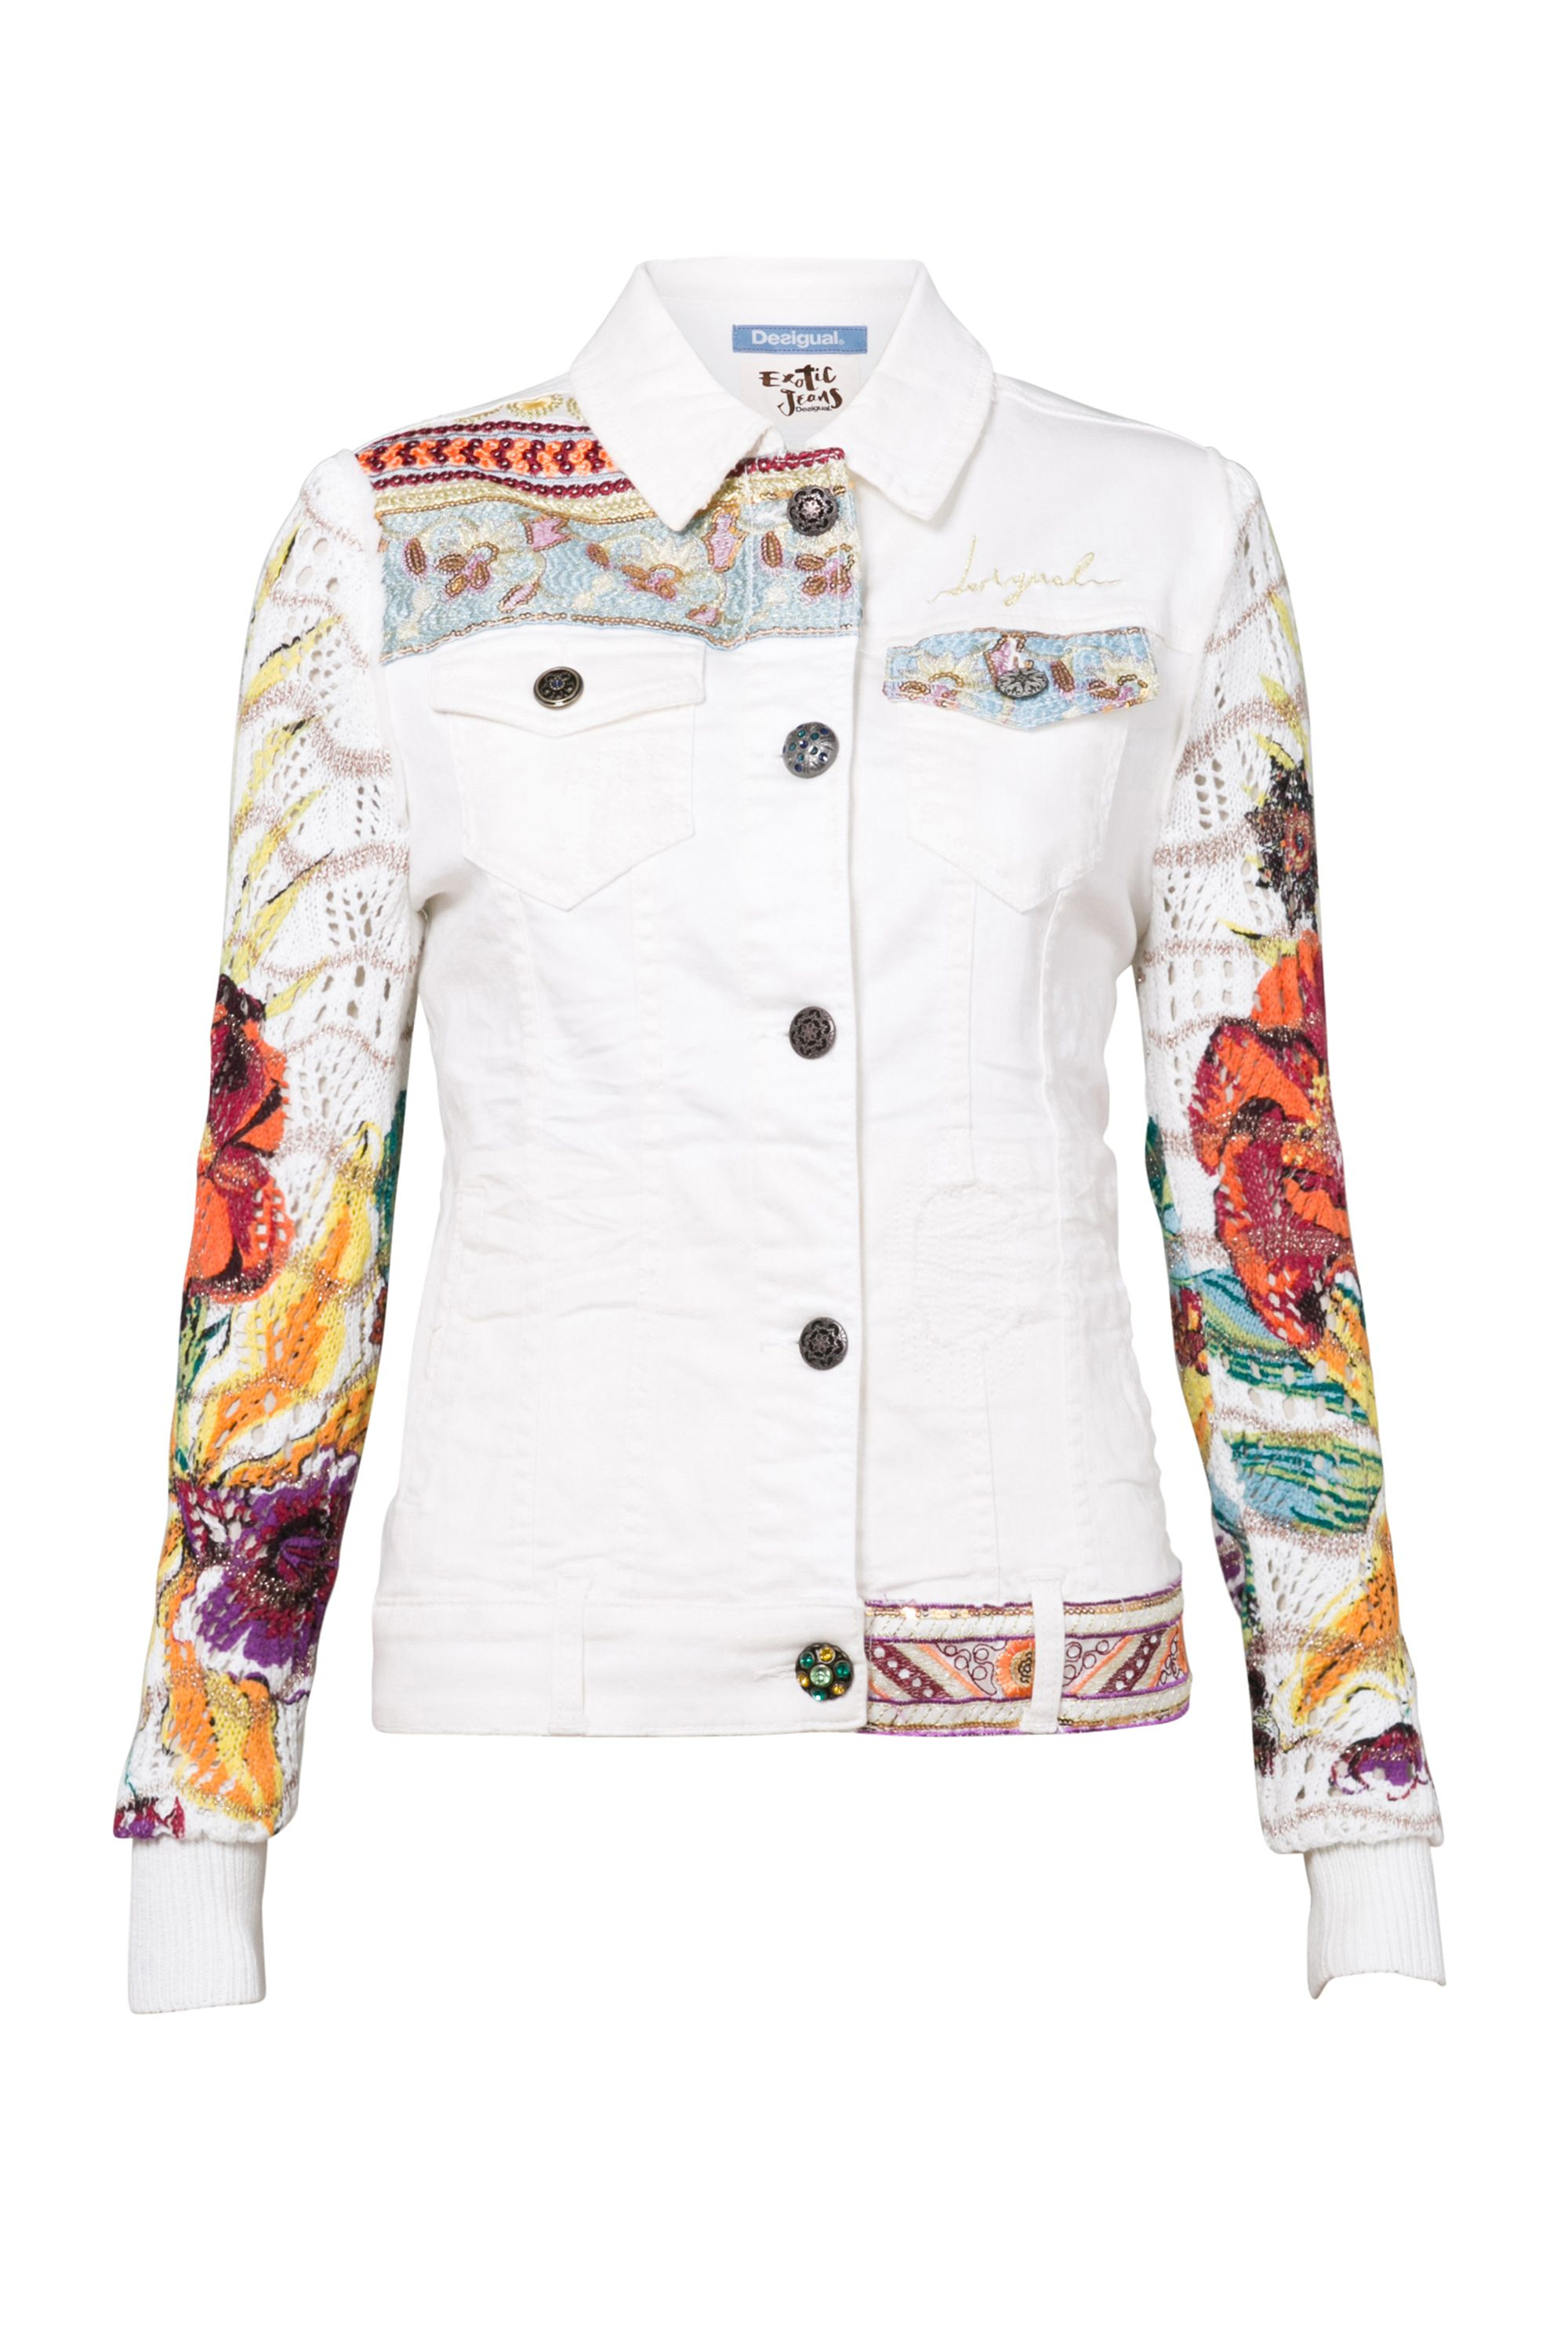 Desigual Jacket Exotic White, Blue